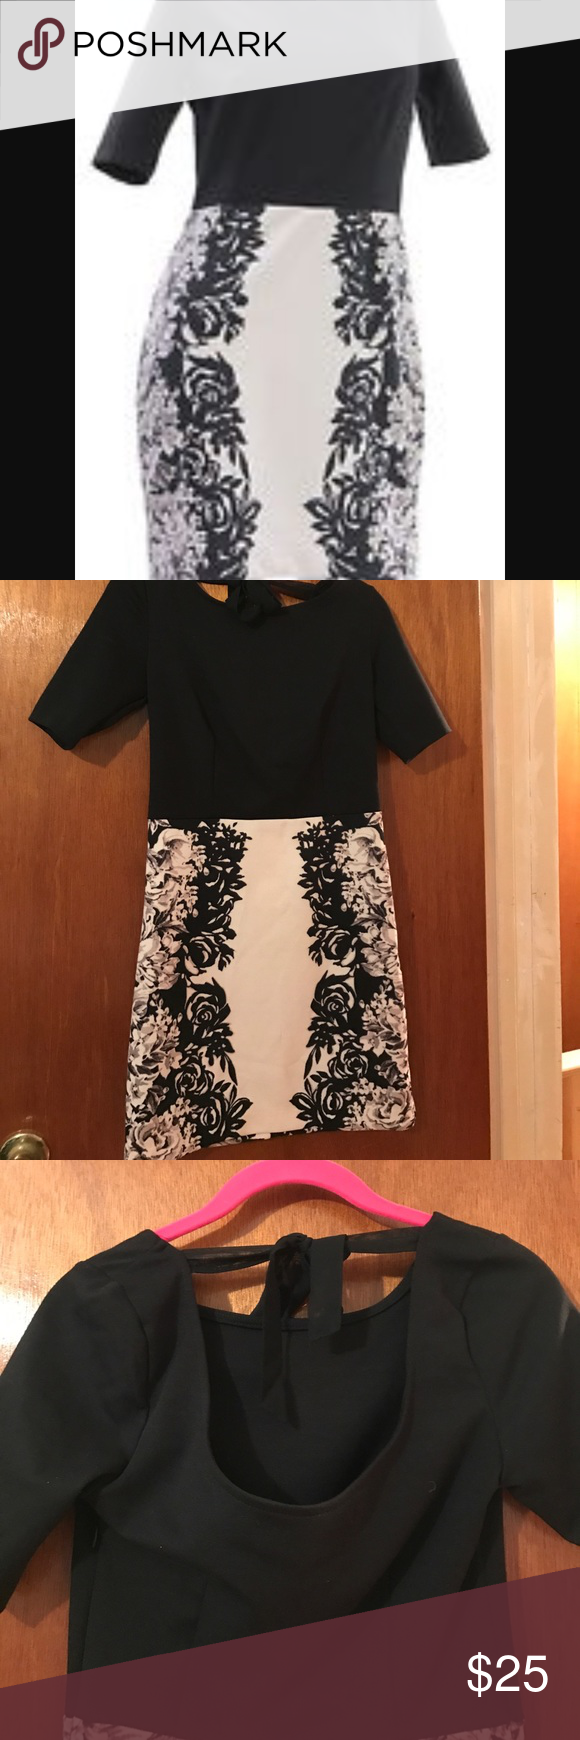 Lauren Conrad black and white fitted dress Worn once, like new! LC Lauren Conrad Dresses